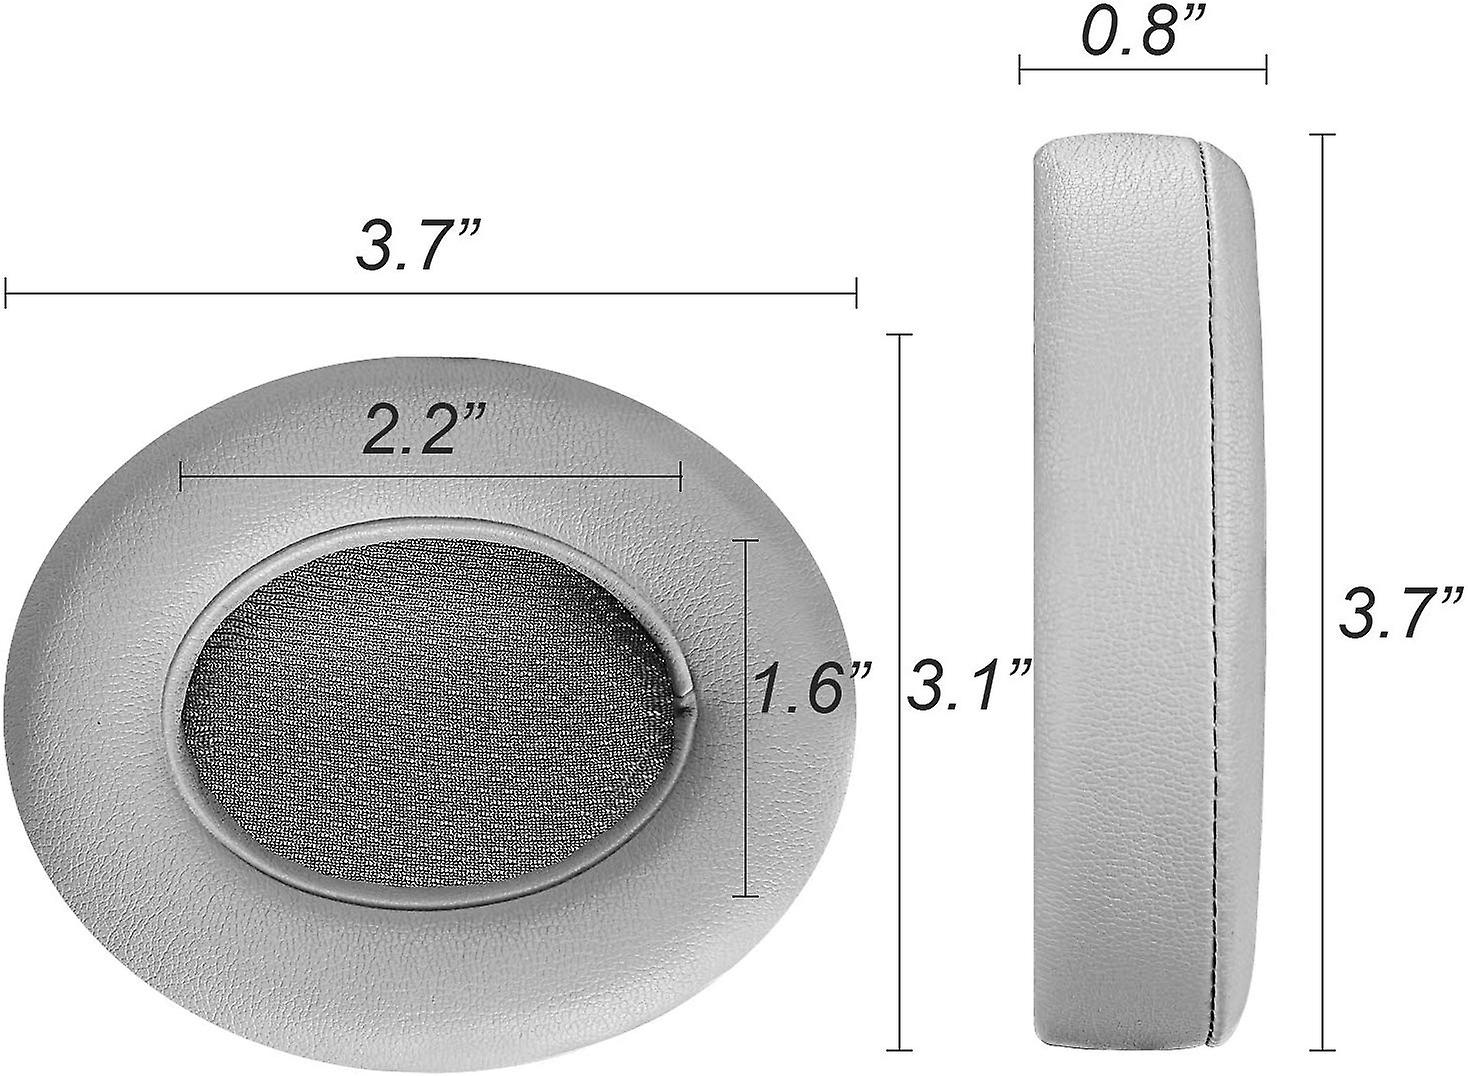 REYTID Replacement Grey Ear Pad Cushion Kit Compatible with Beats By Dr. Dre Studio 2.0 & Studio 2.0 Wireless Headphones